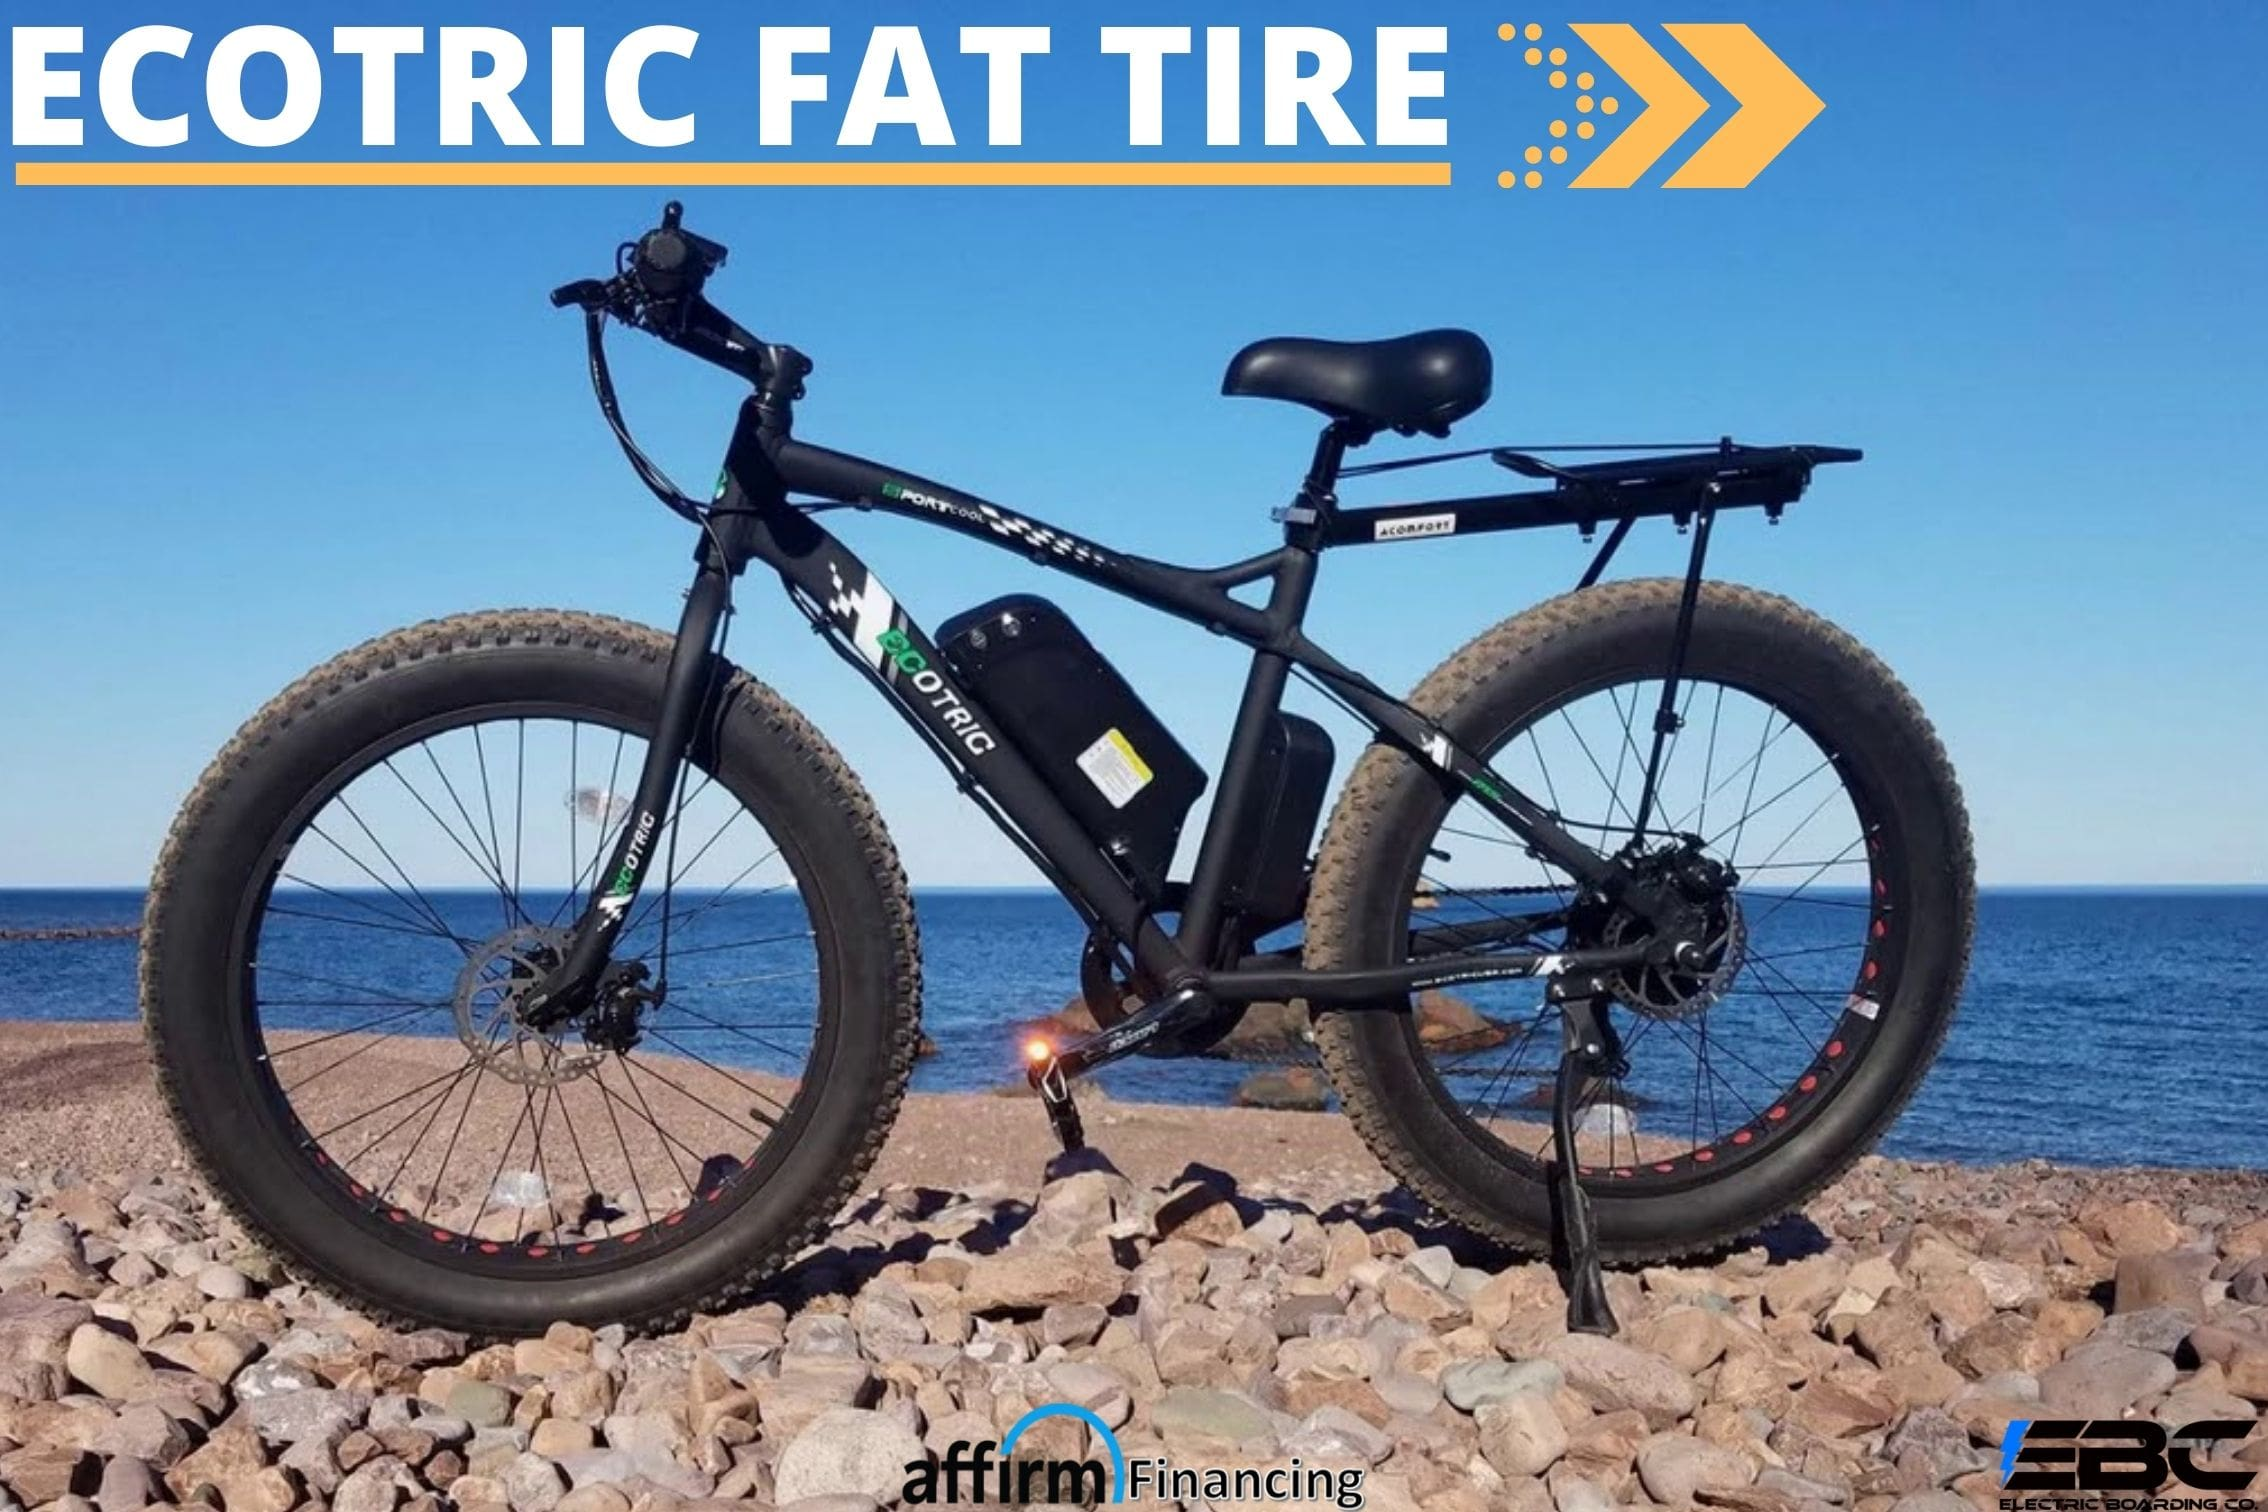 Ecotric Fat Tire